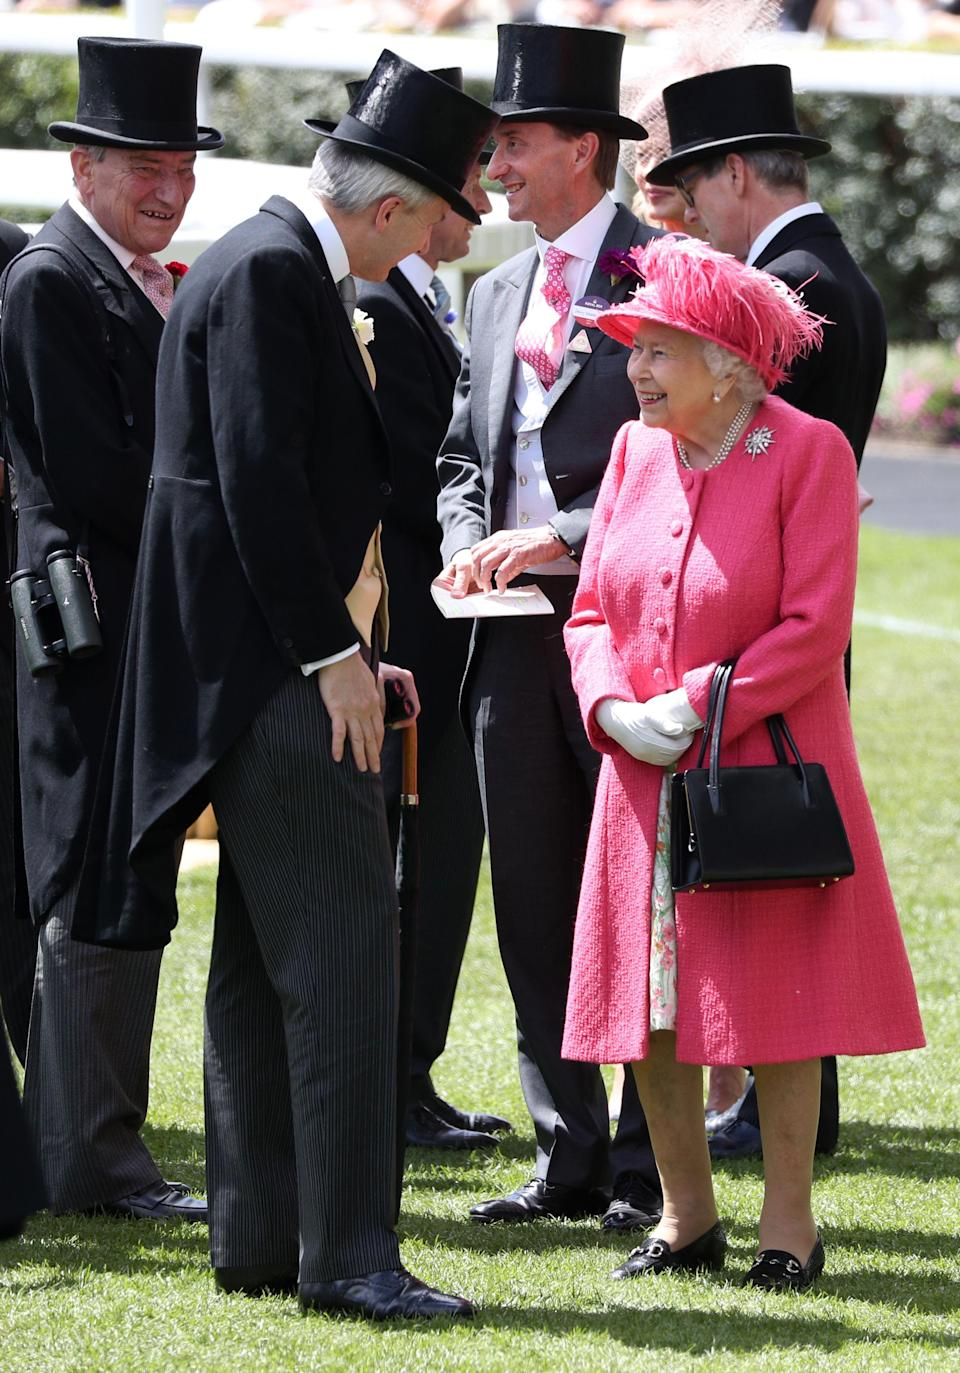 <p>On the fourth day of Royal Ascot, the sun finally turned up, and the royals did too. Read on to see all the best photos of Queen Elizabeth's family on the penultimate day of the races. </p>